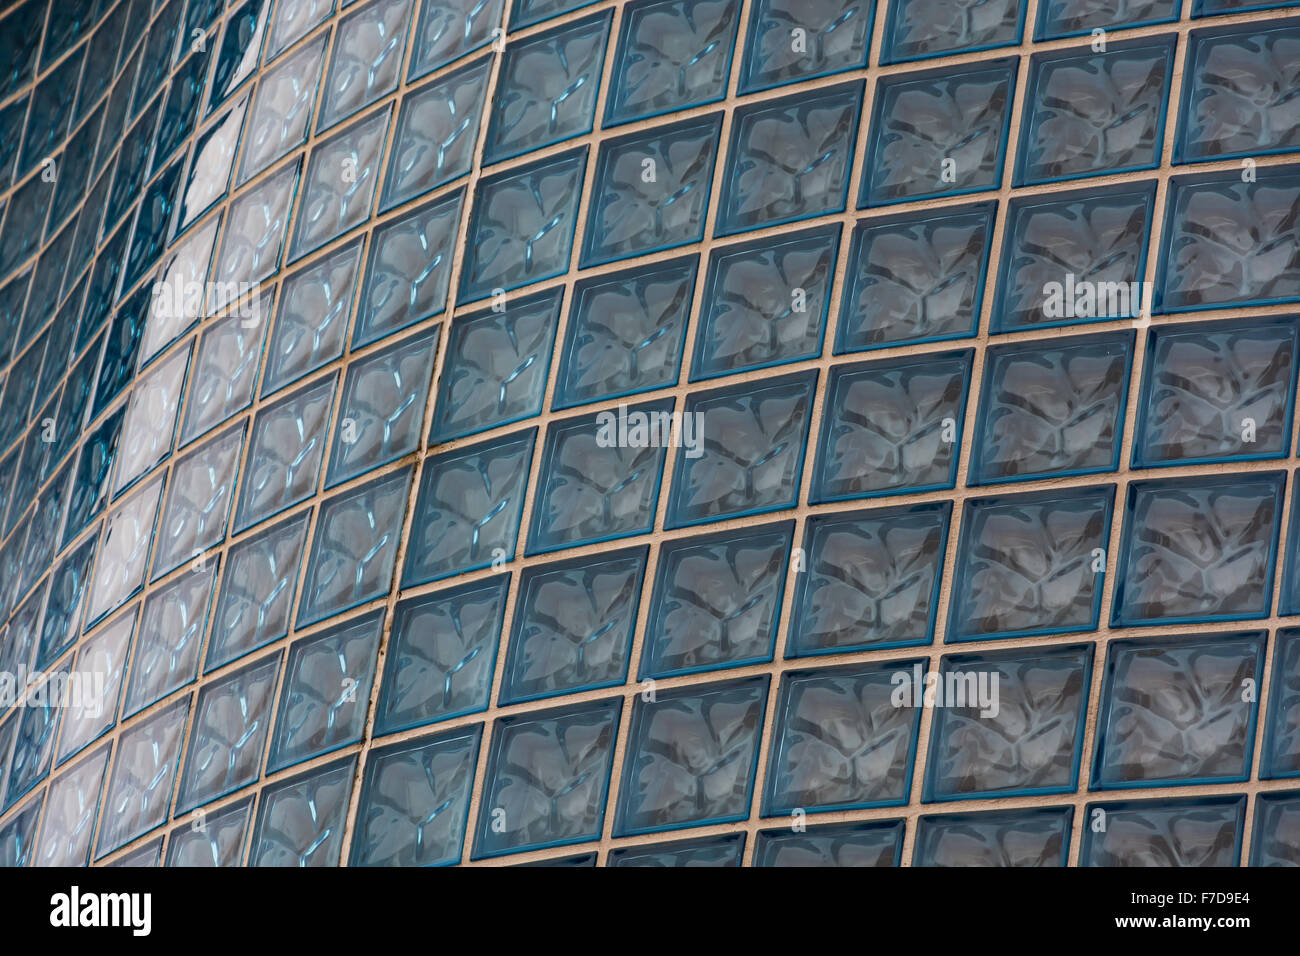 A glass brick, block background, wallpaper, pattern or texture. - Stock Image